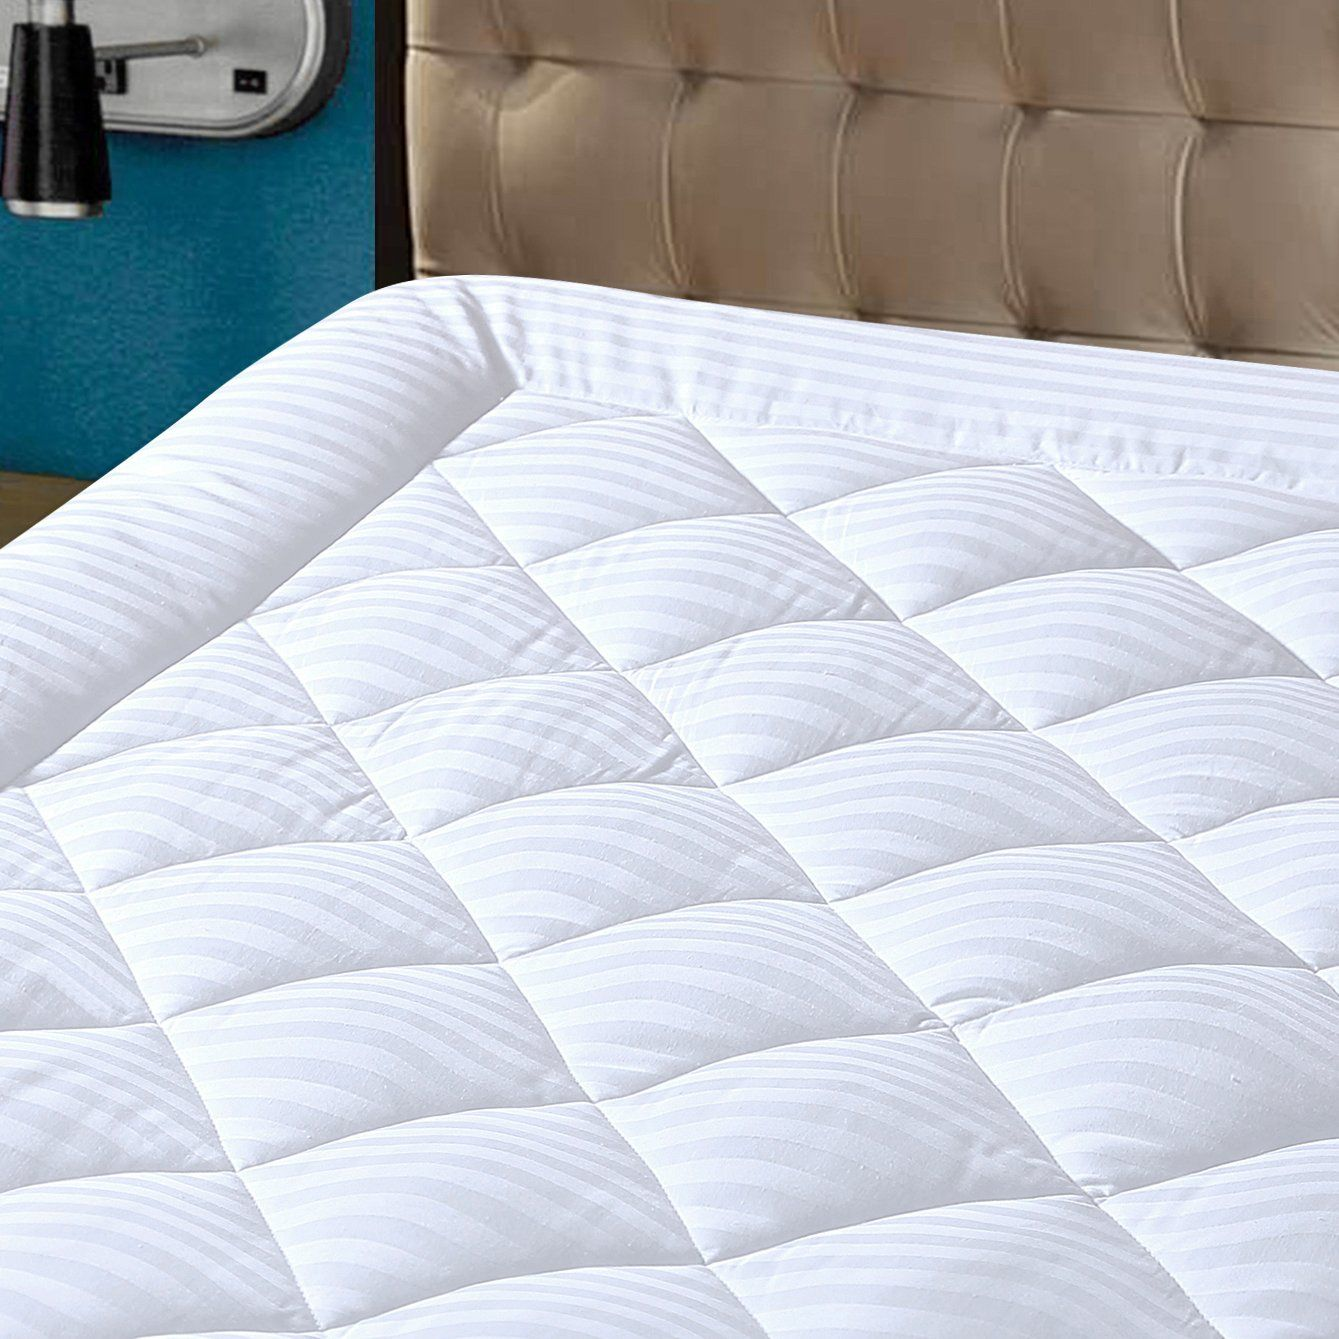 Hypnos Mattress Pad Cover Queen Size Pillowtop 300tc Down Alternative Topper With 8 21